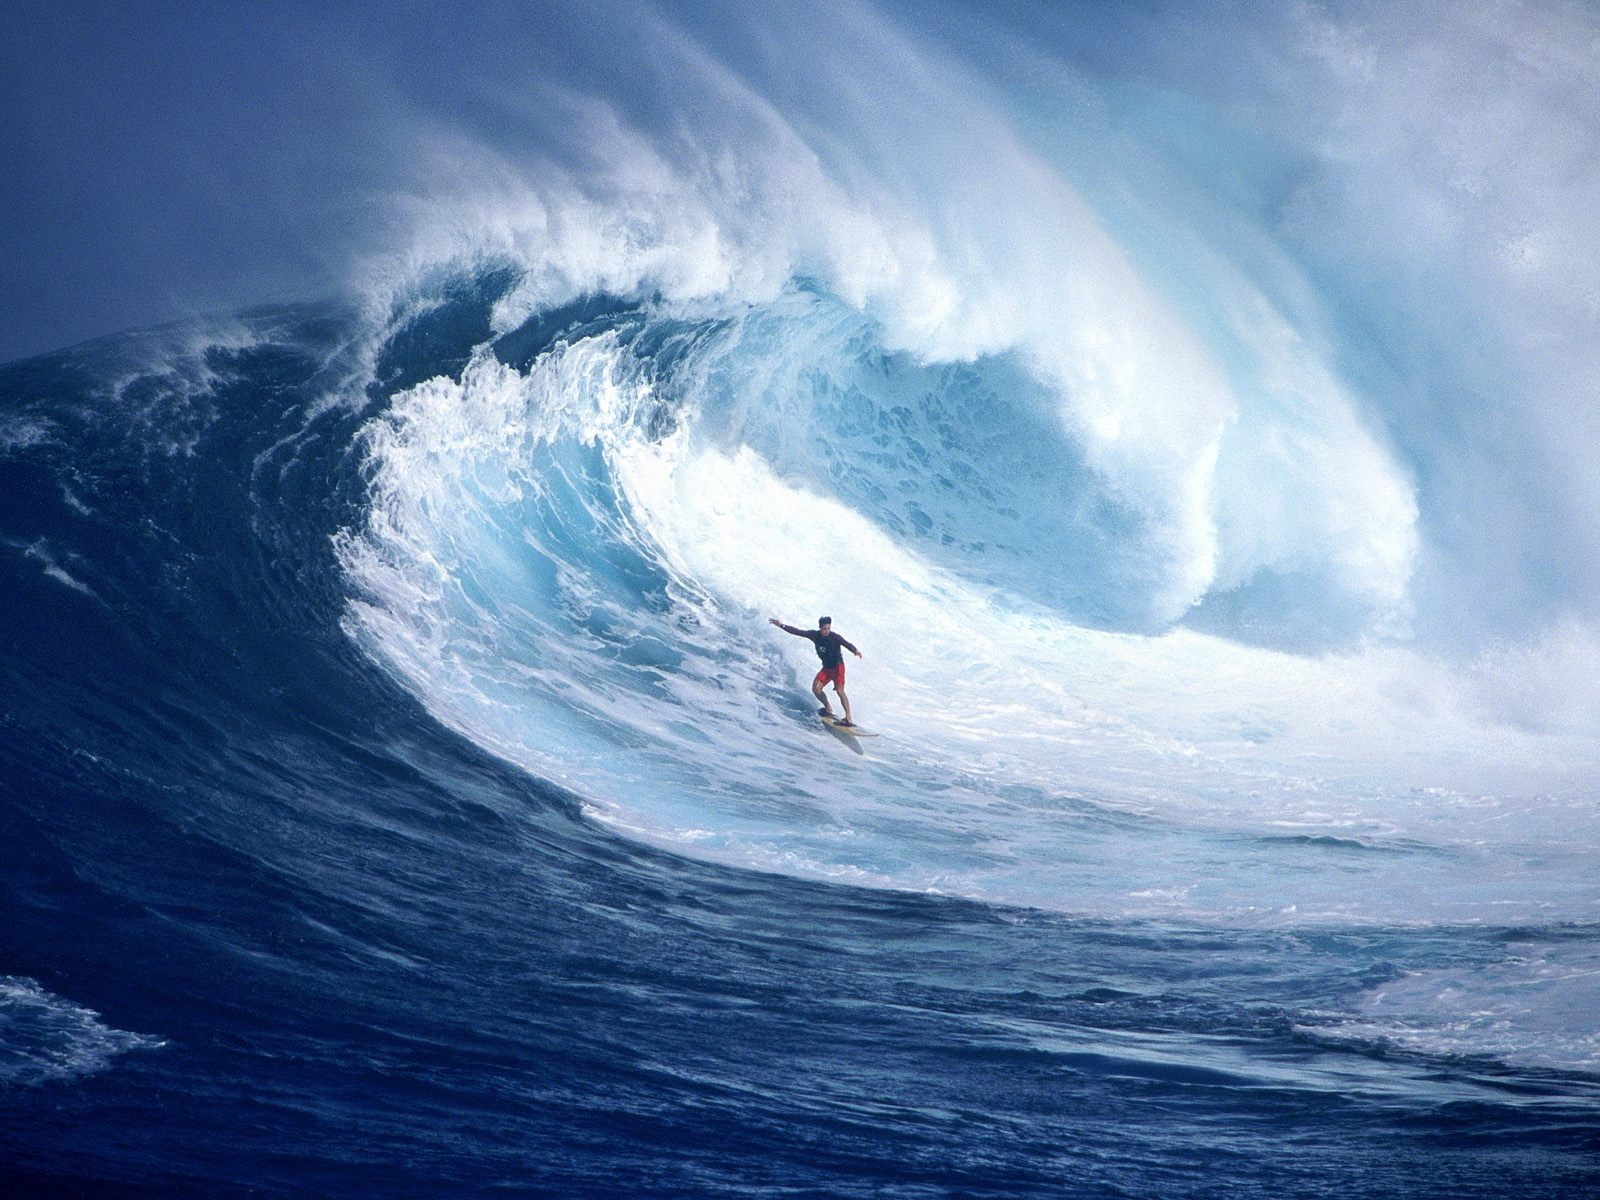 Riding The Wave Wallpaper 1600x1200 px